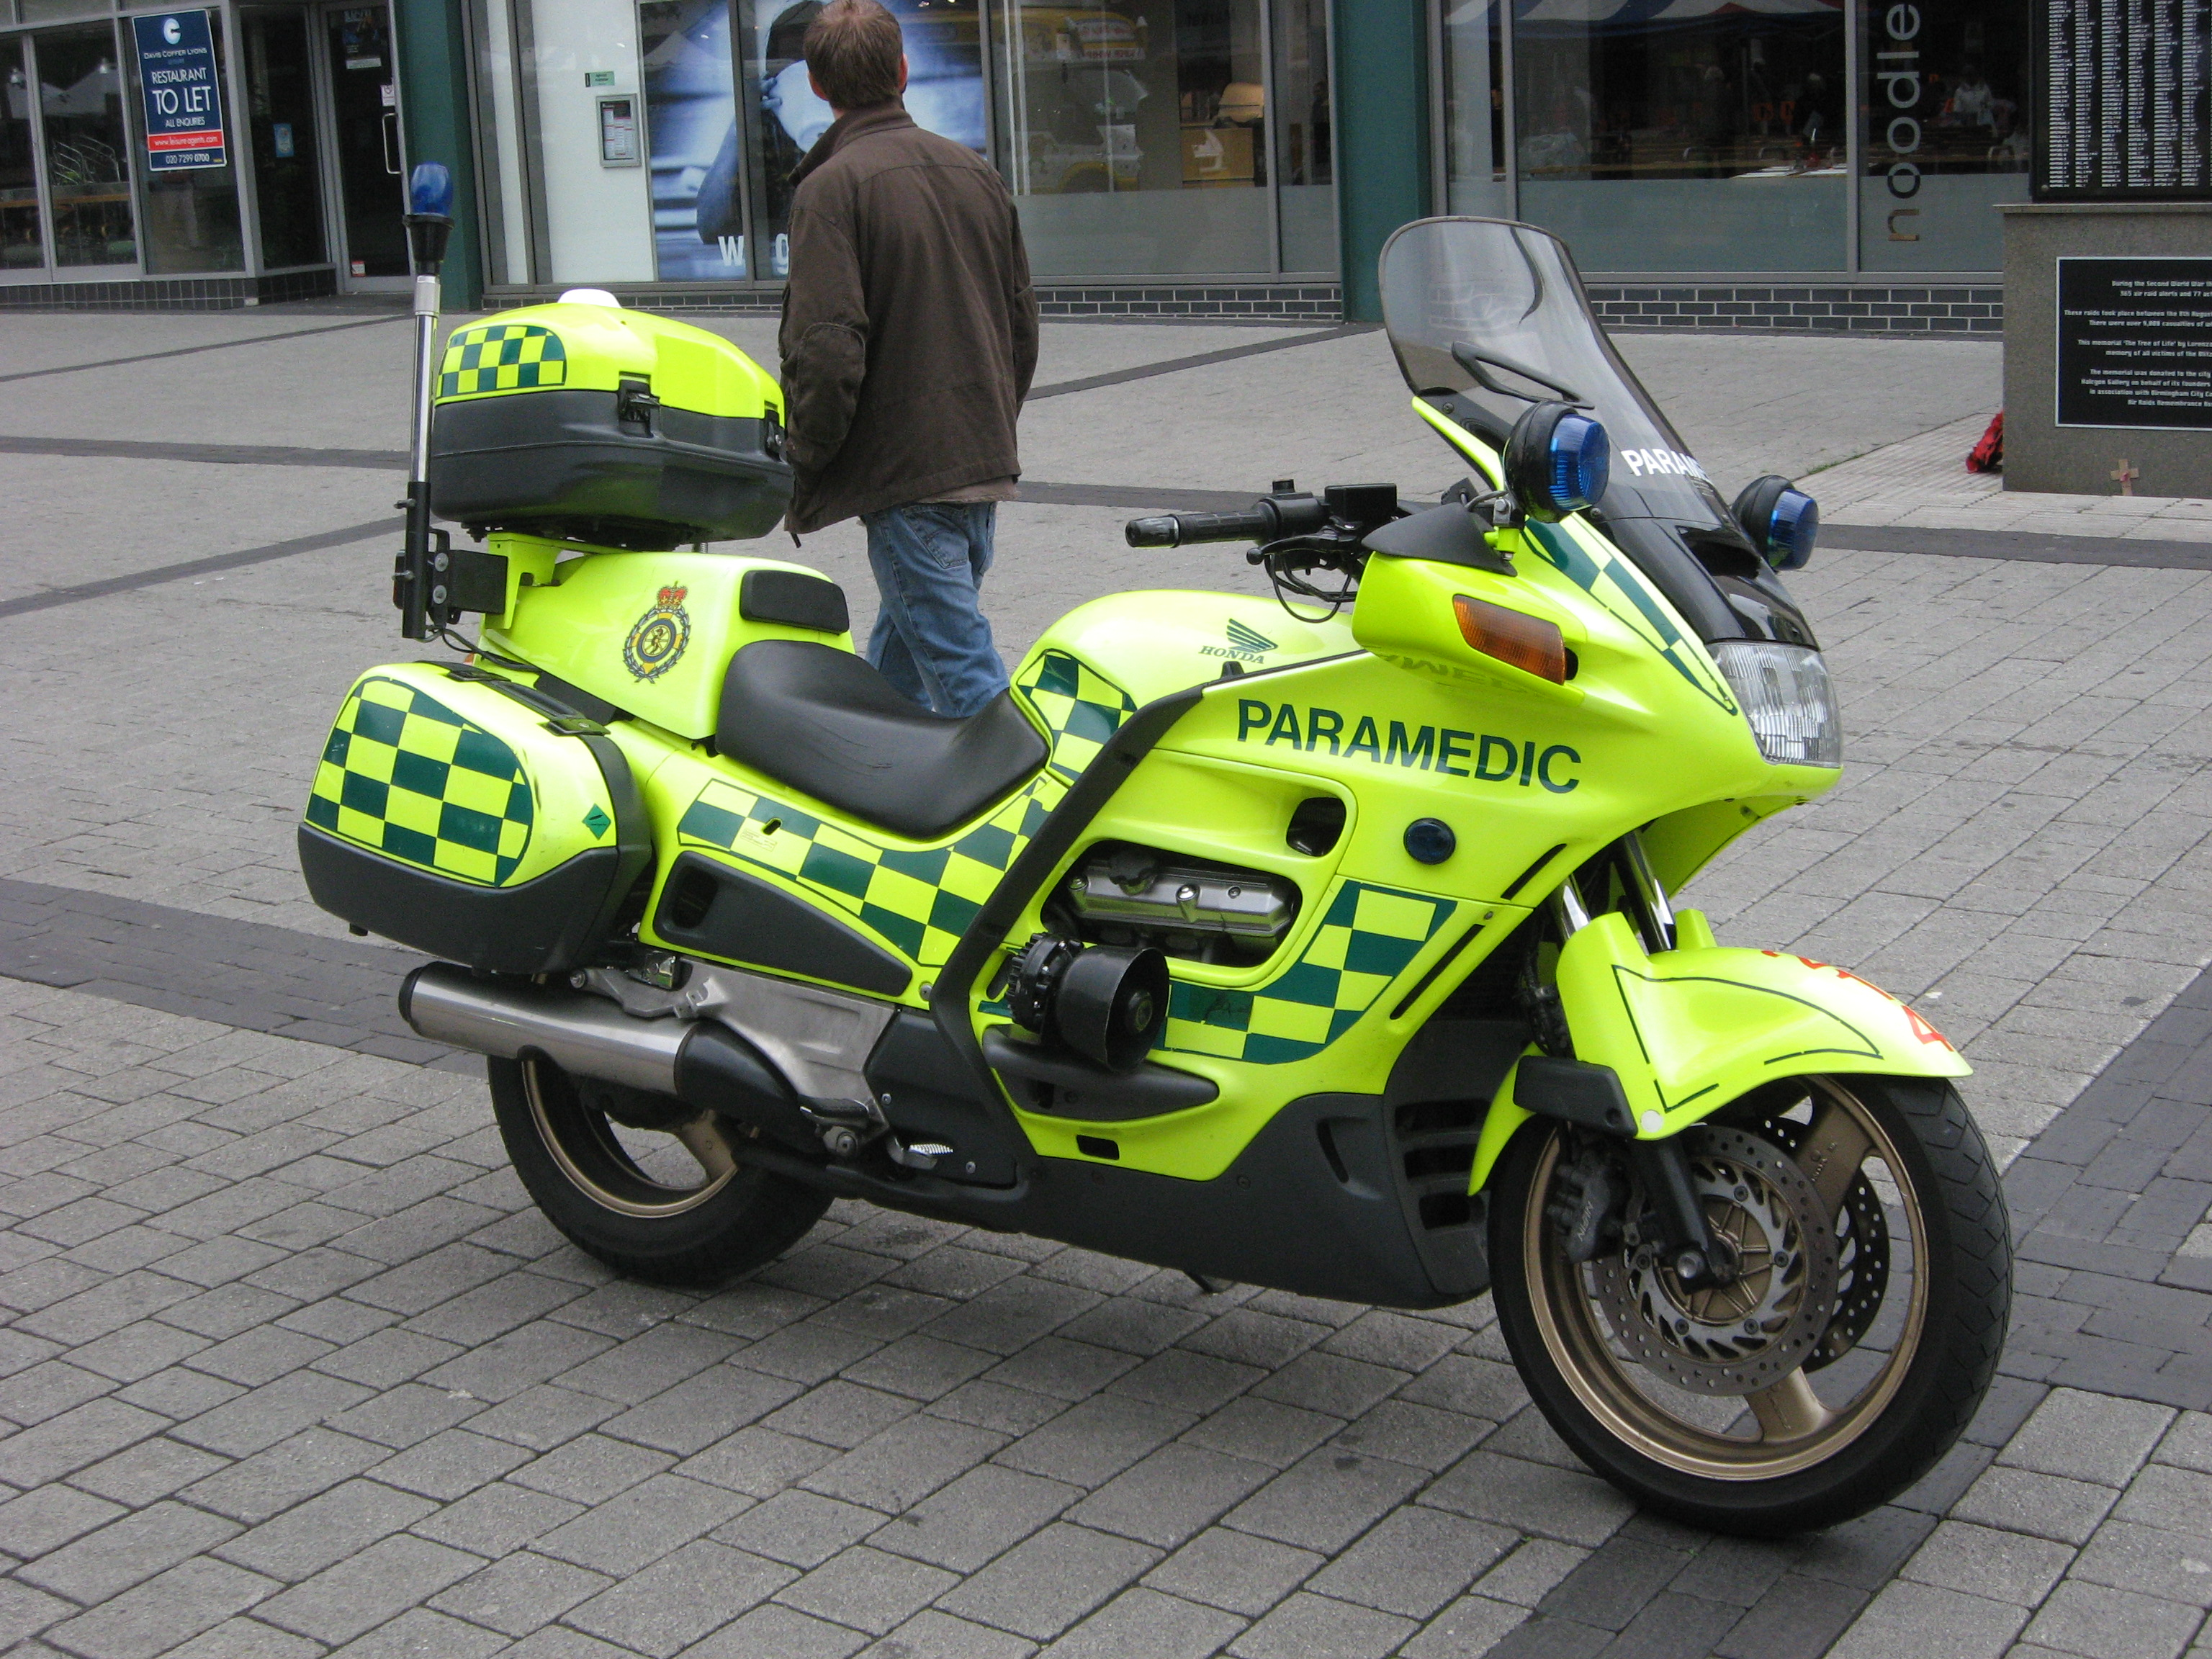 nsw air ambulance helicopter with File Motorcycle Paramedic London Ambulance Service on Motorcyclist Serious Collision further 3283802 besides Ambulance Rescue Helicopter Paramedic in addition About moreover Story E6frg6nf 1226128258149.